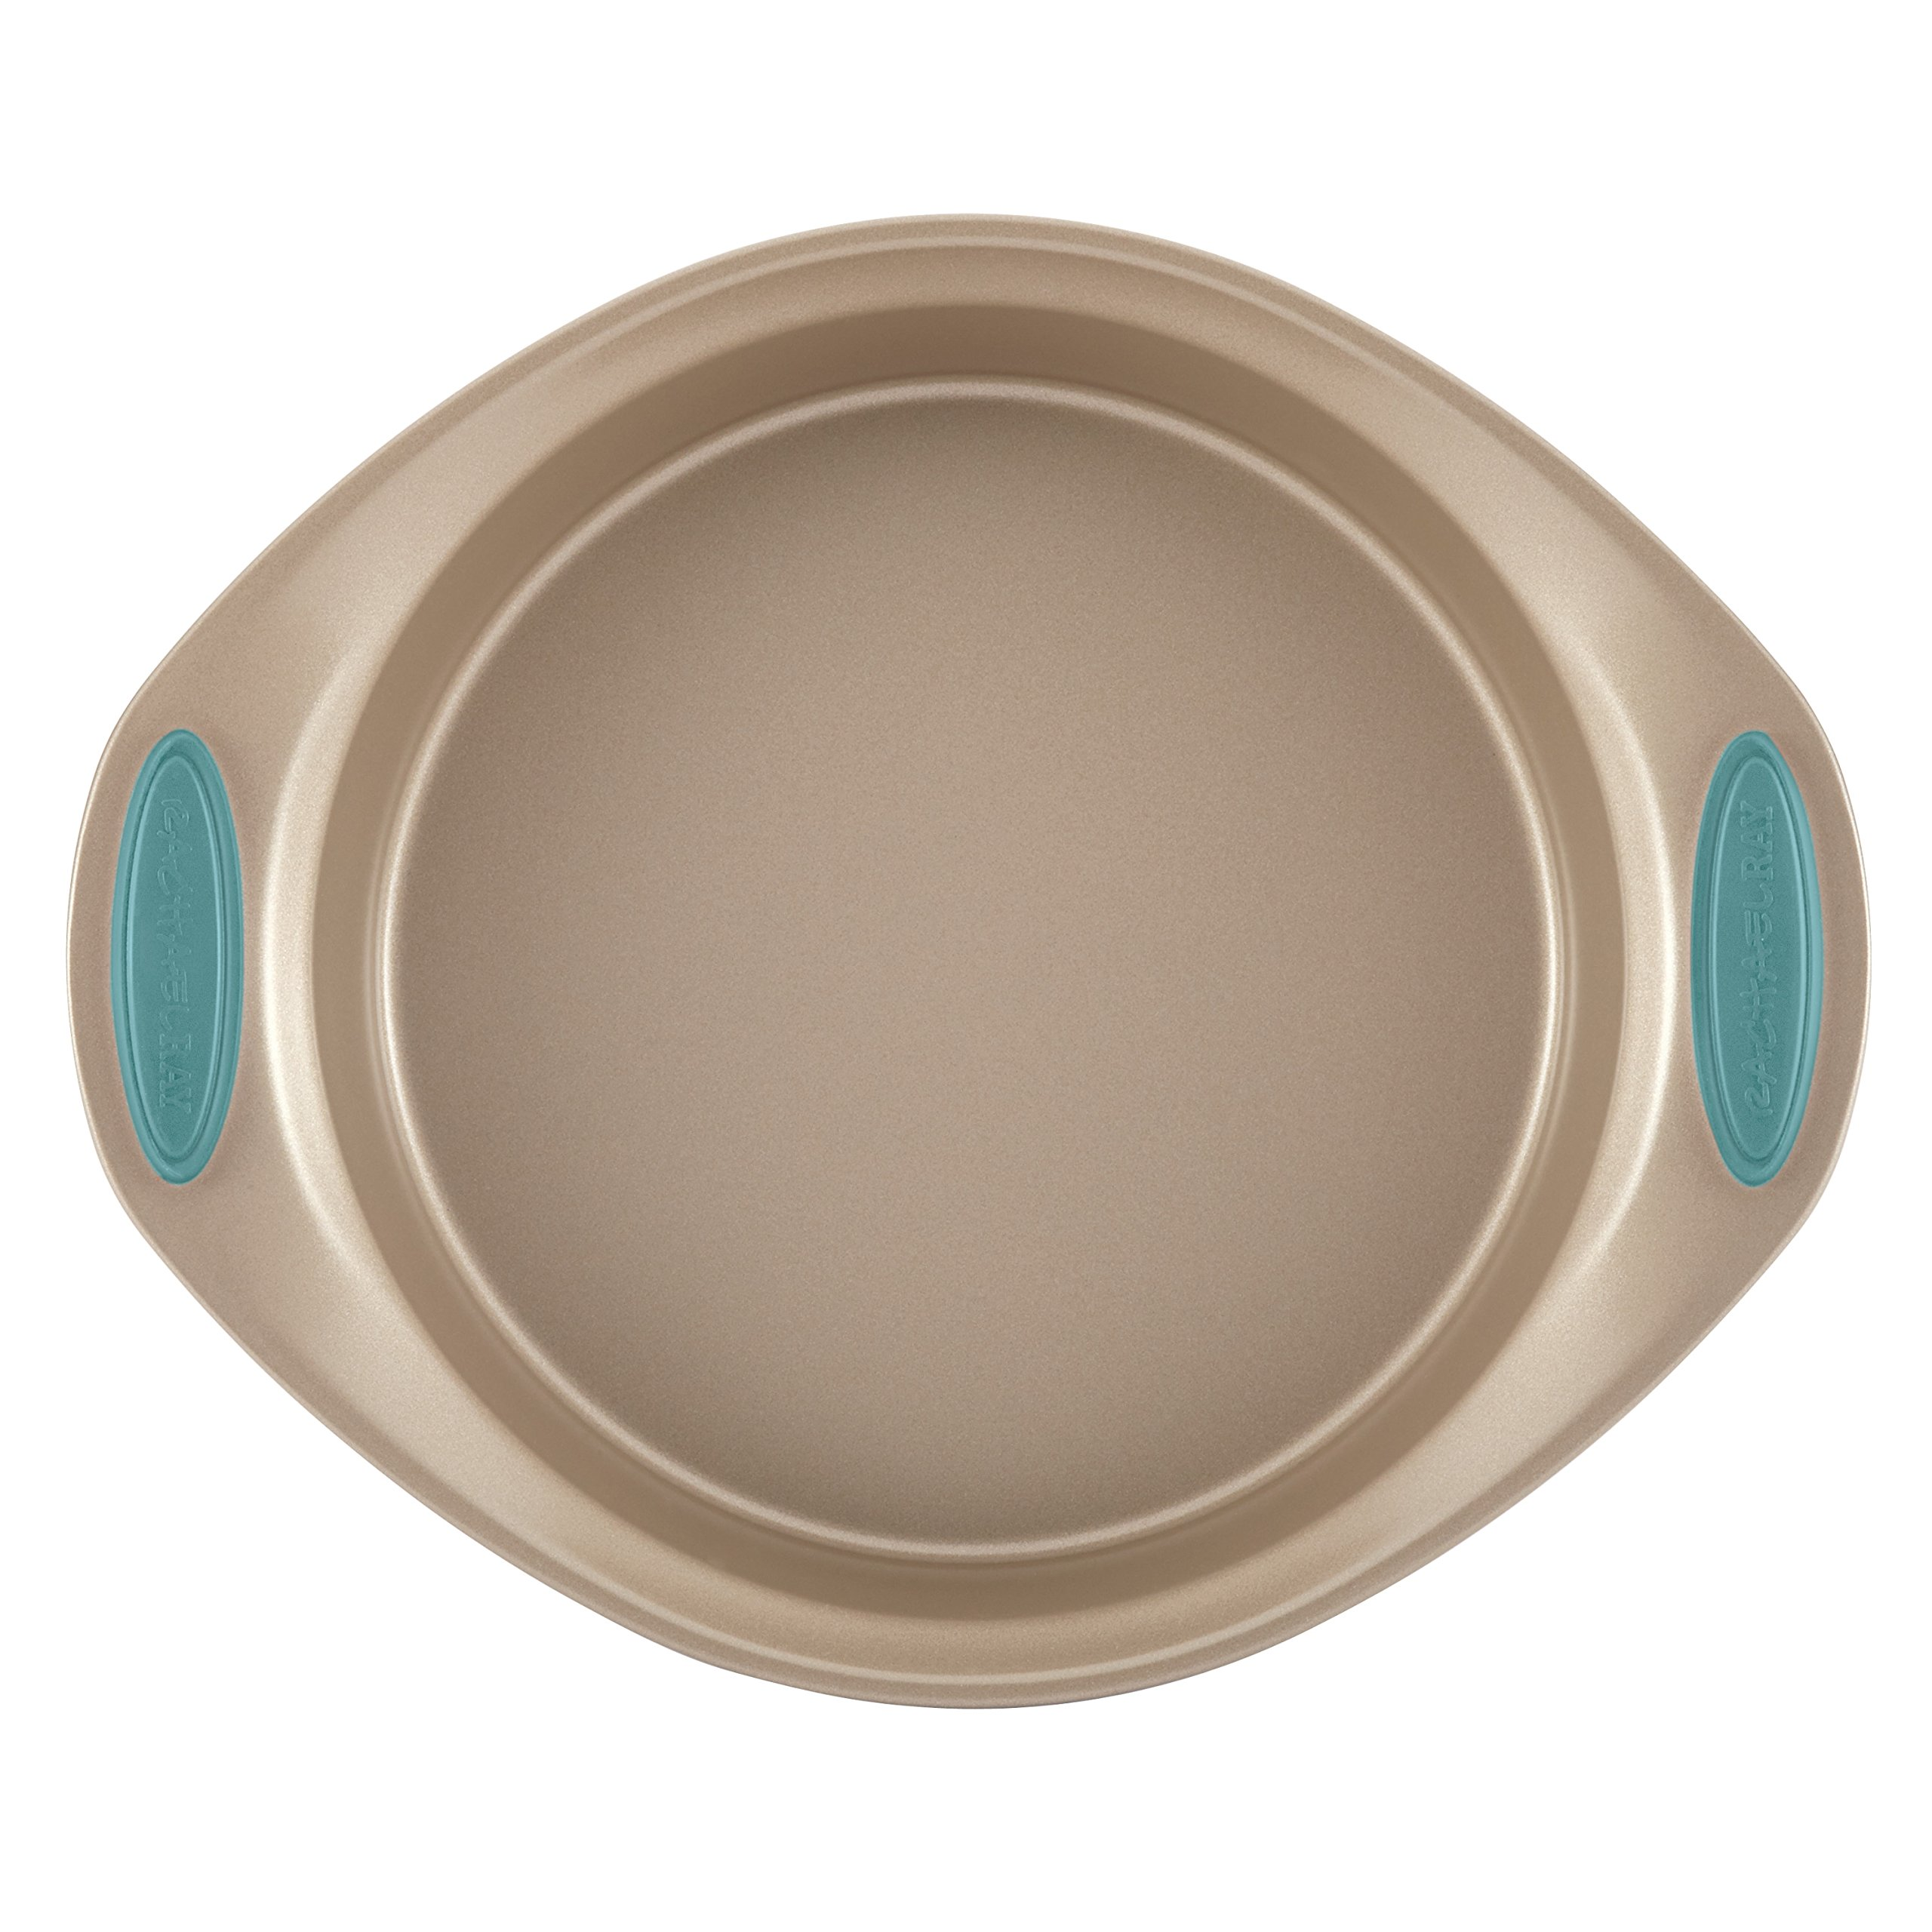 Rachael Ray Nonstick Bakeware 5-Piece Set, Latte Brown with Agave Blue Handle Grips by Rachael Ray (Image #4)